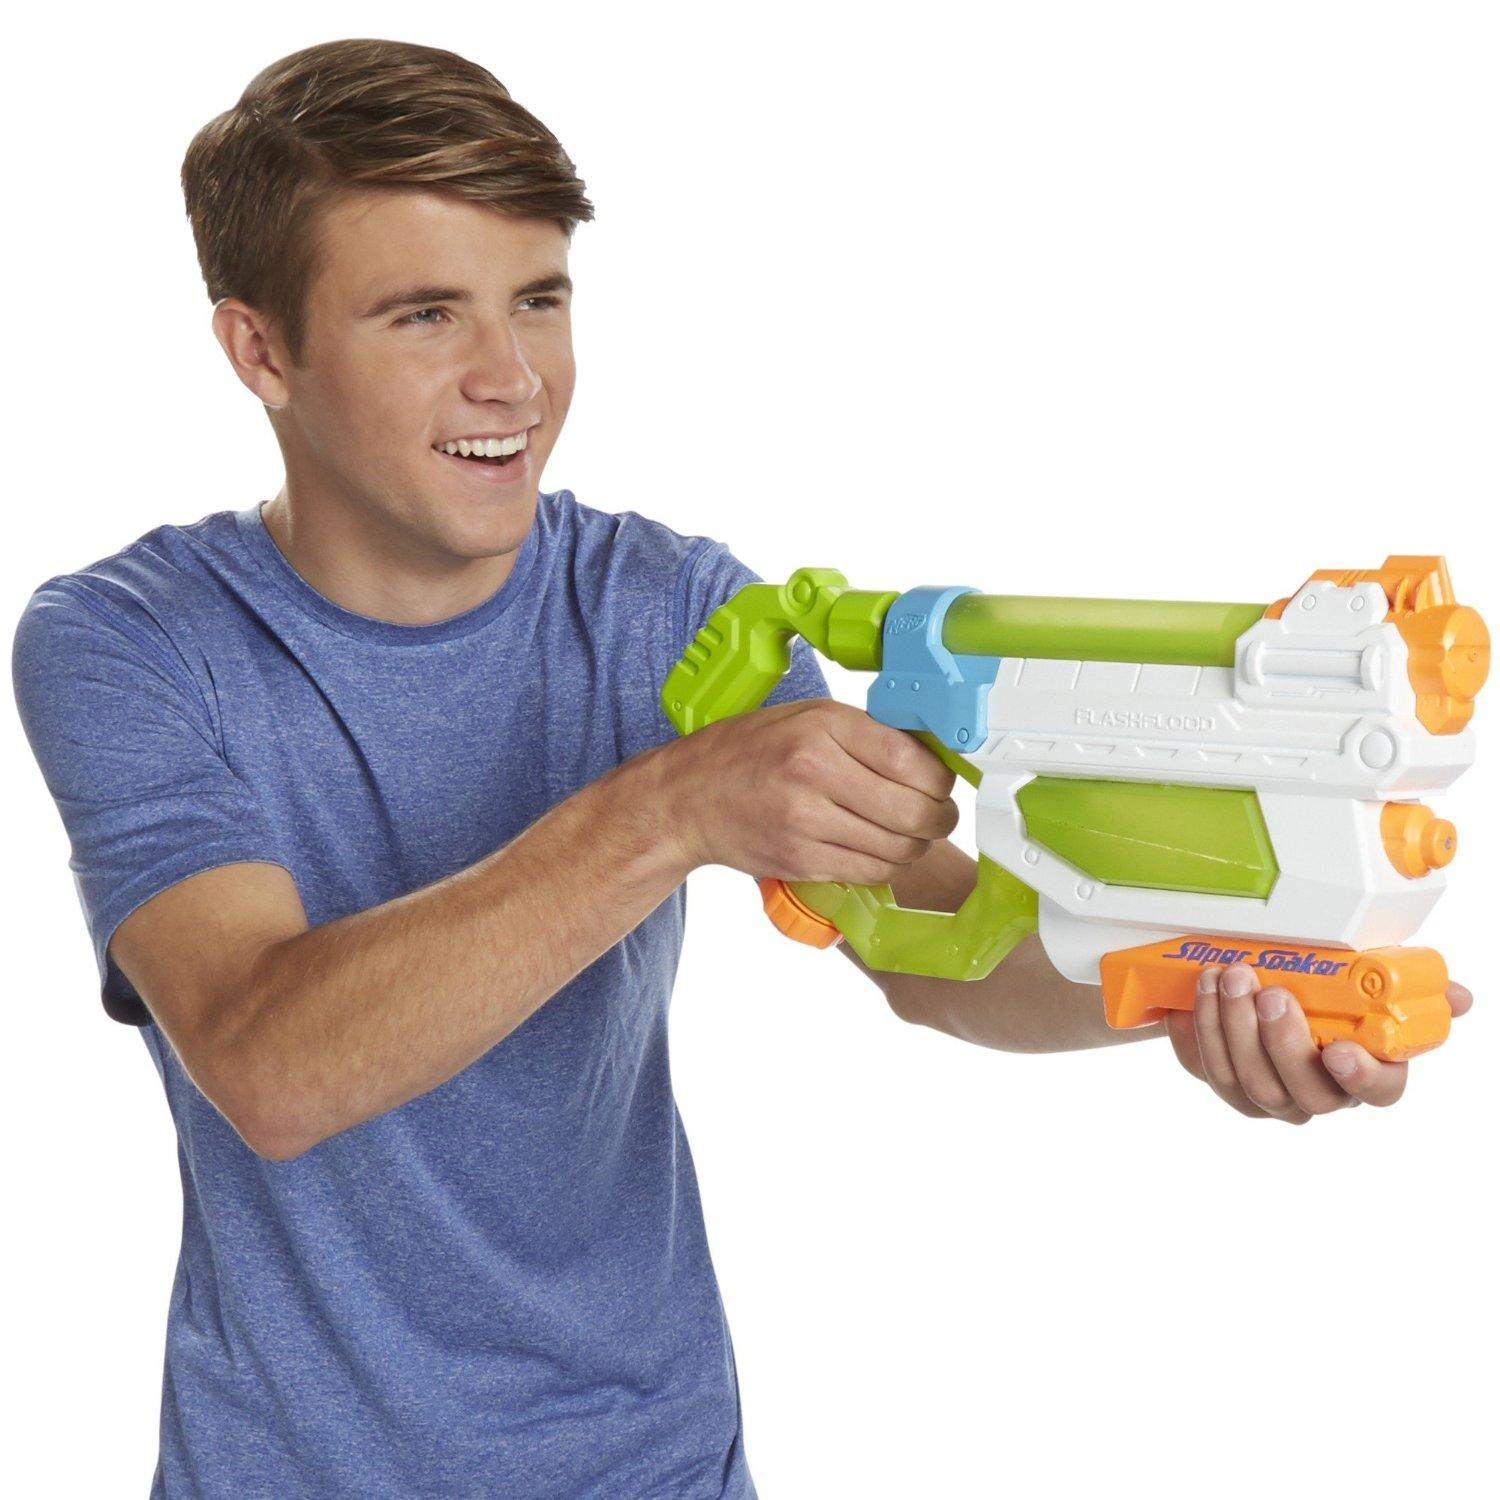 $3.88 Nerf Super Soaker FlashFlood Blaster